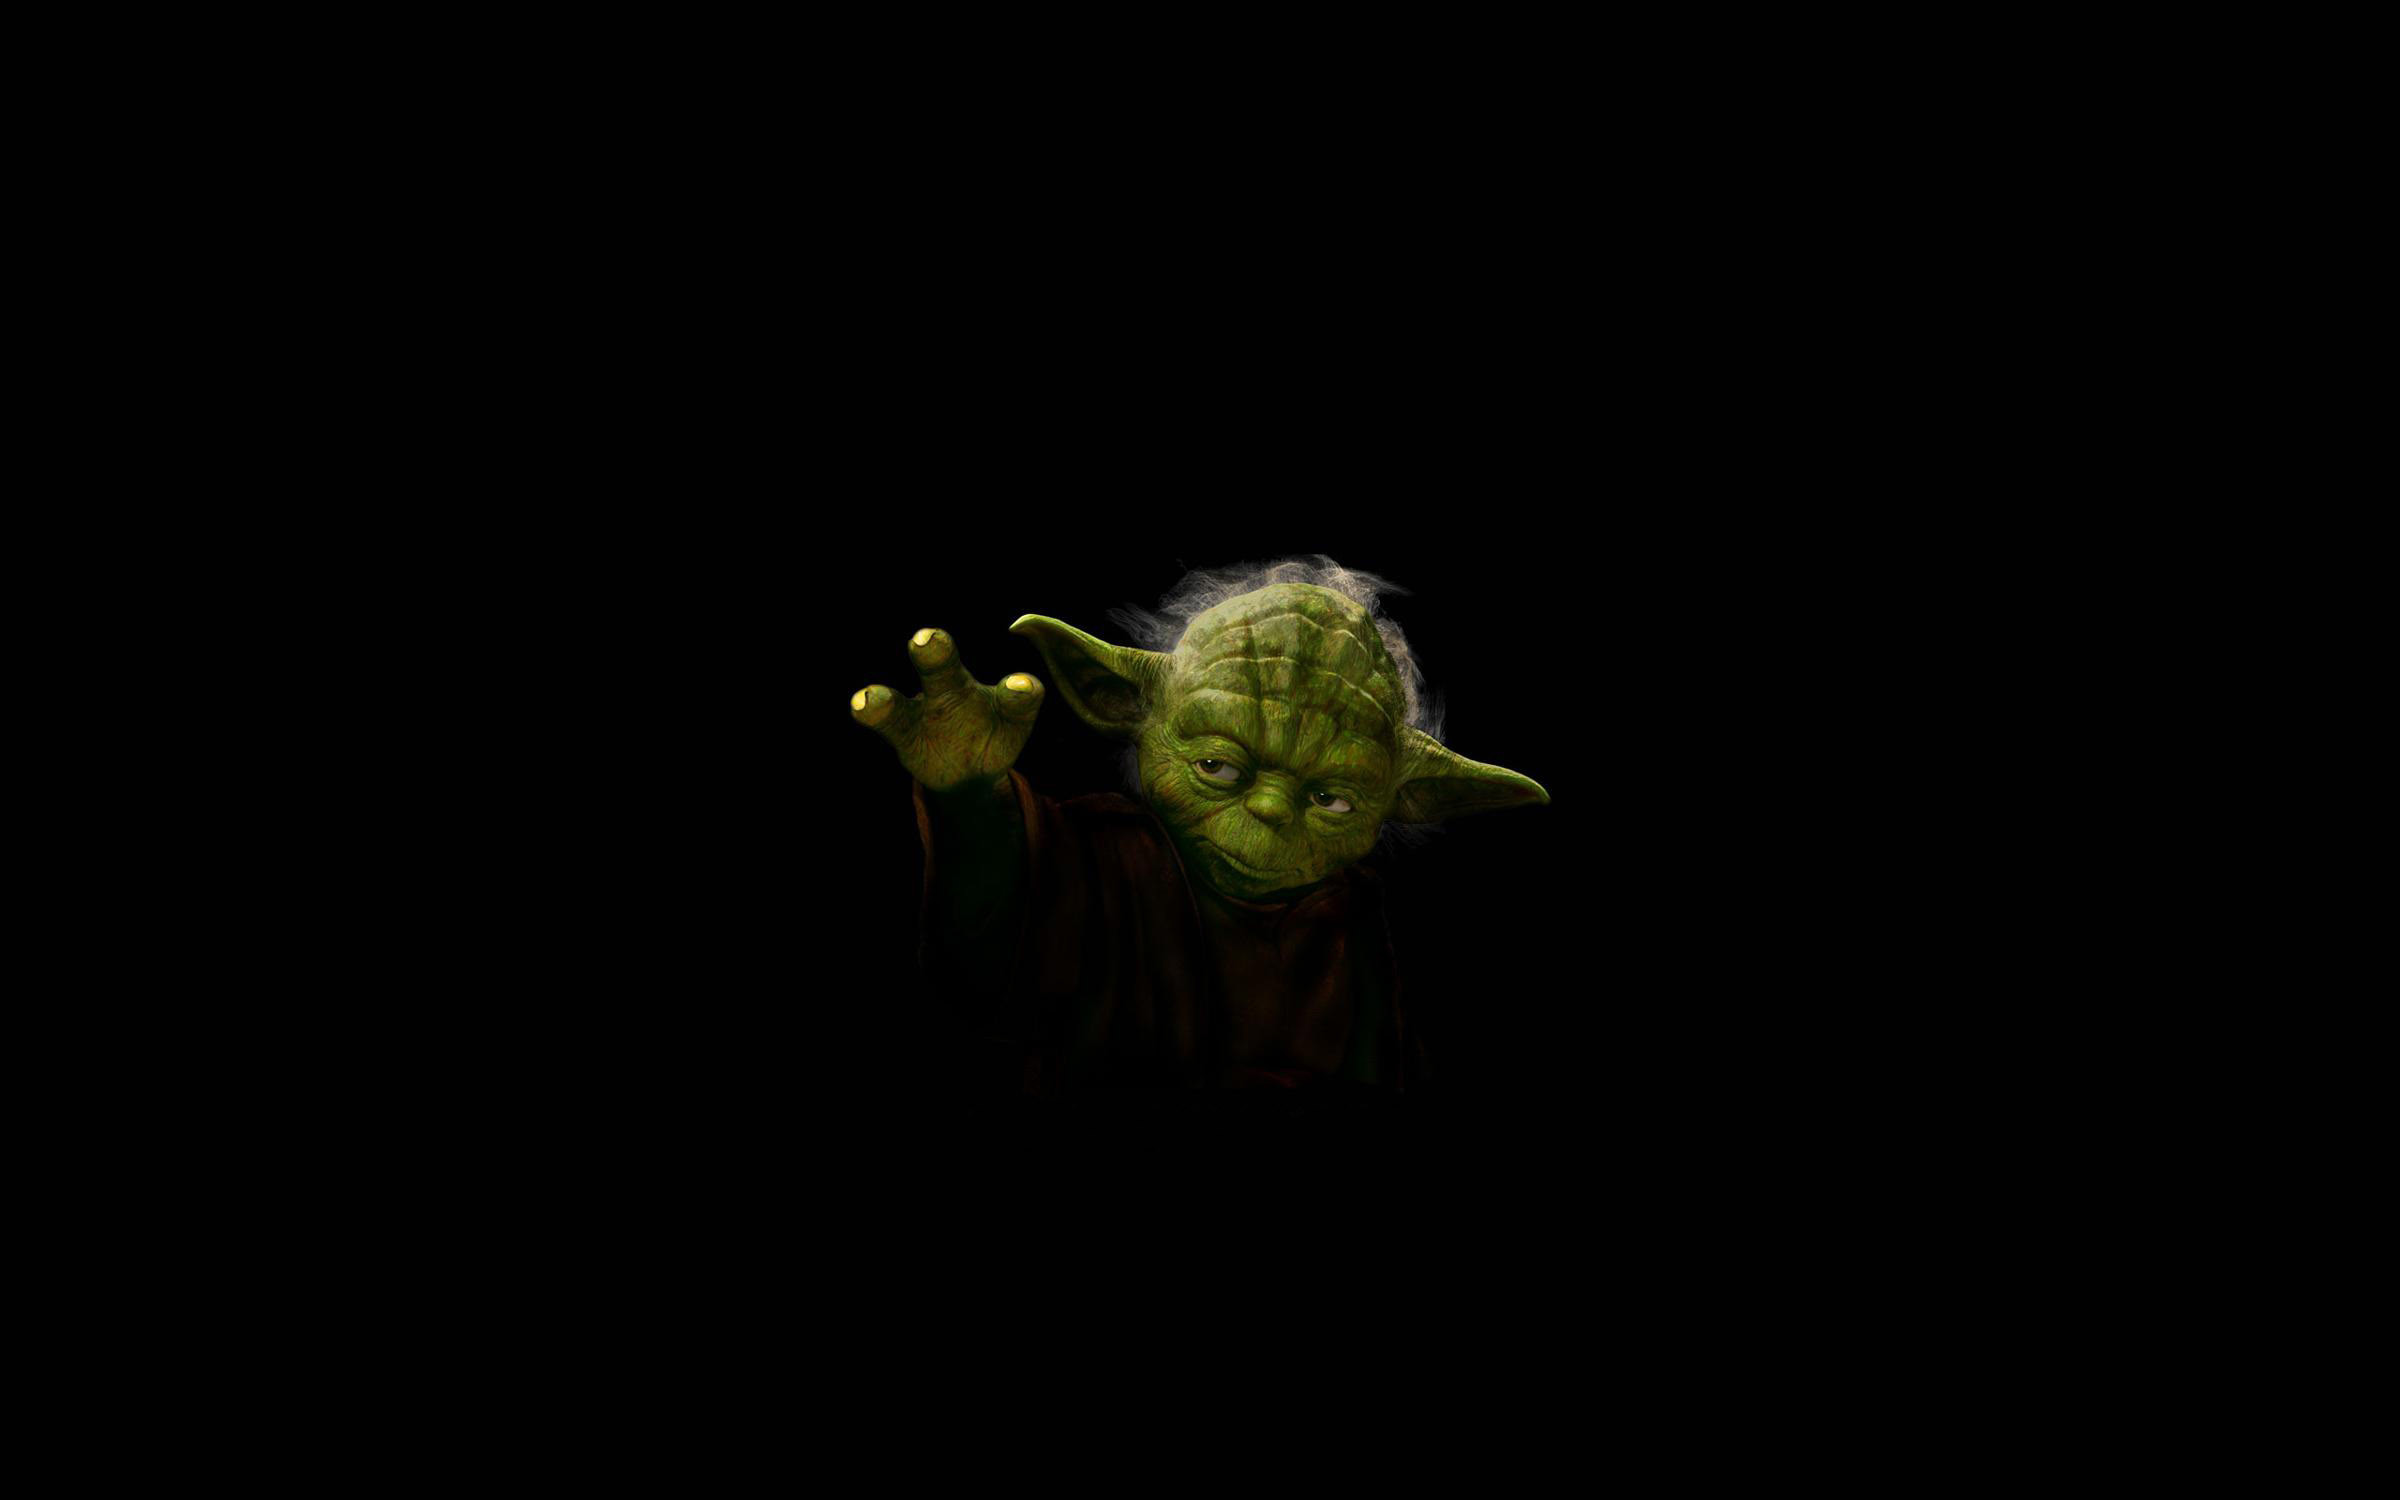 2400x1500 star wars minimalistic jedi yoda HD Wallpaper - Movies & TV (#864411)